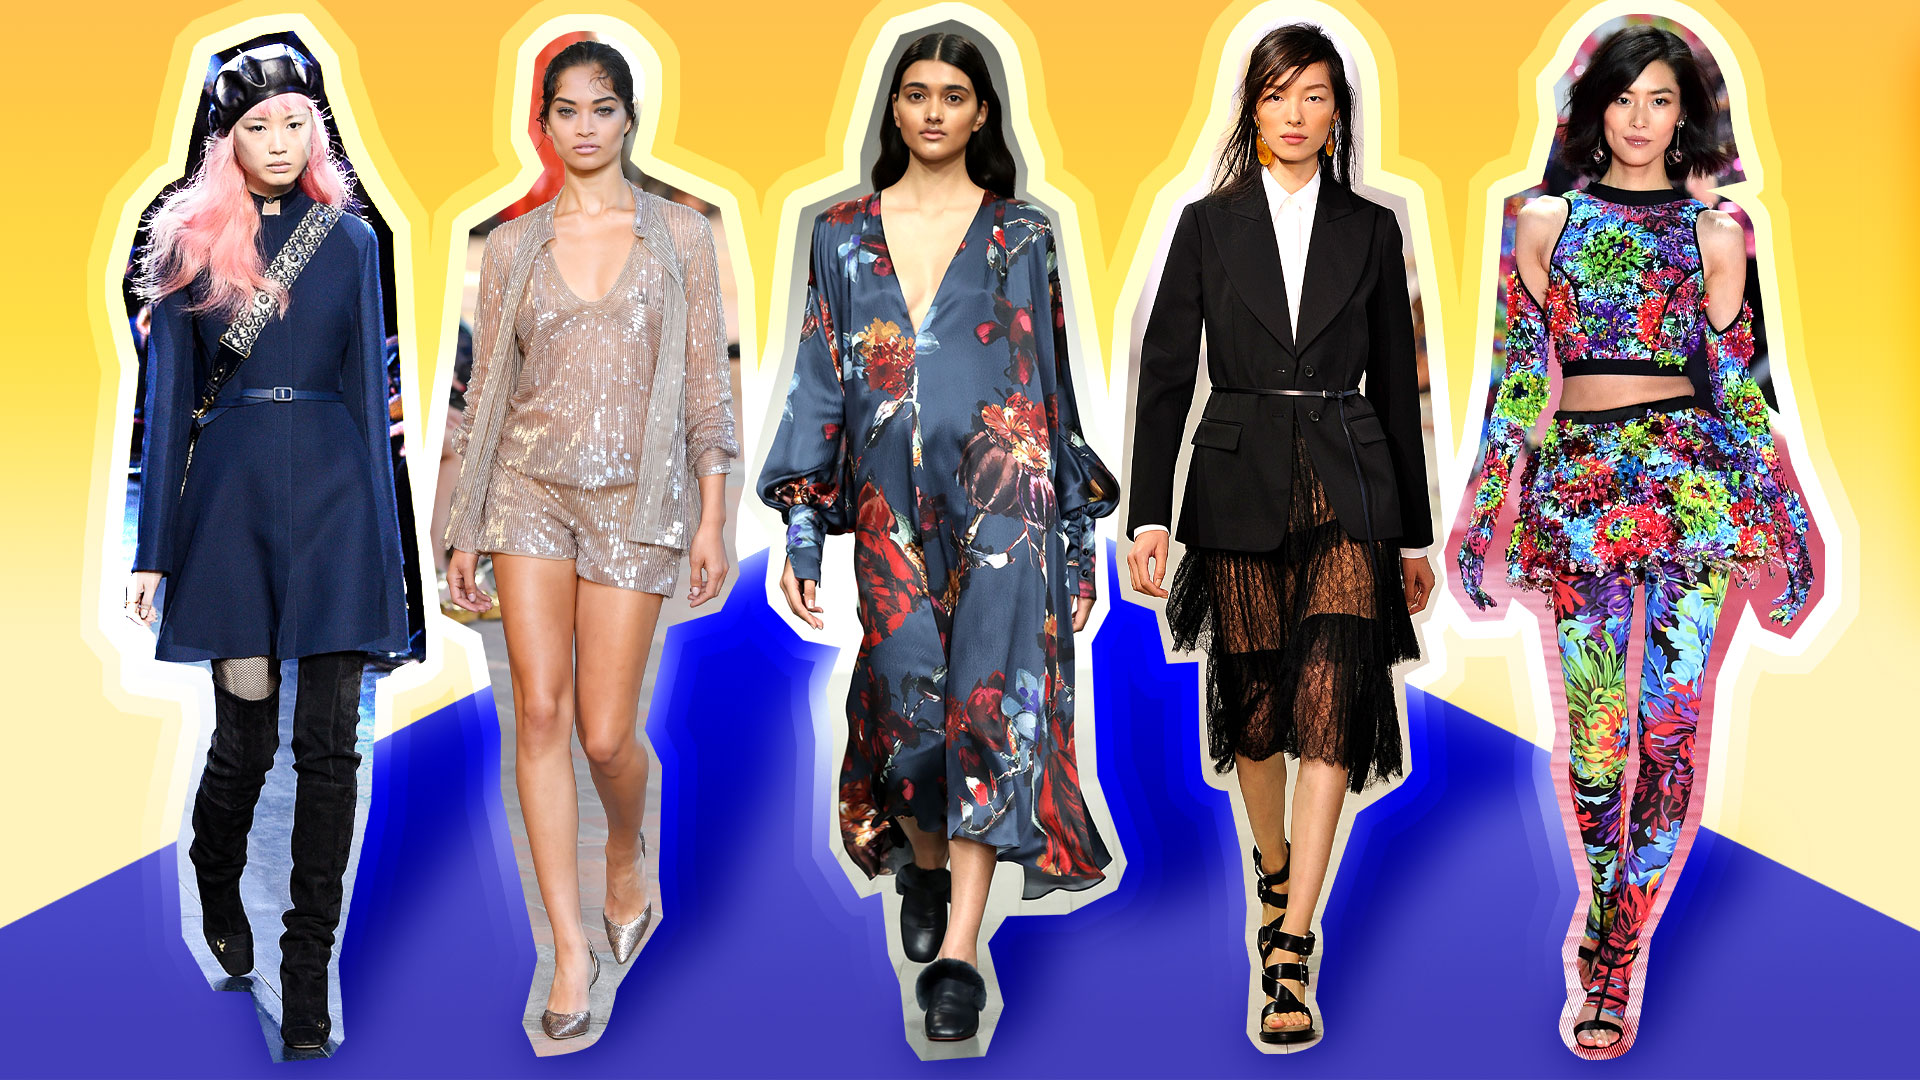 STYLECASTER | Asian Models to Watch